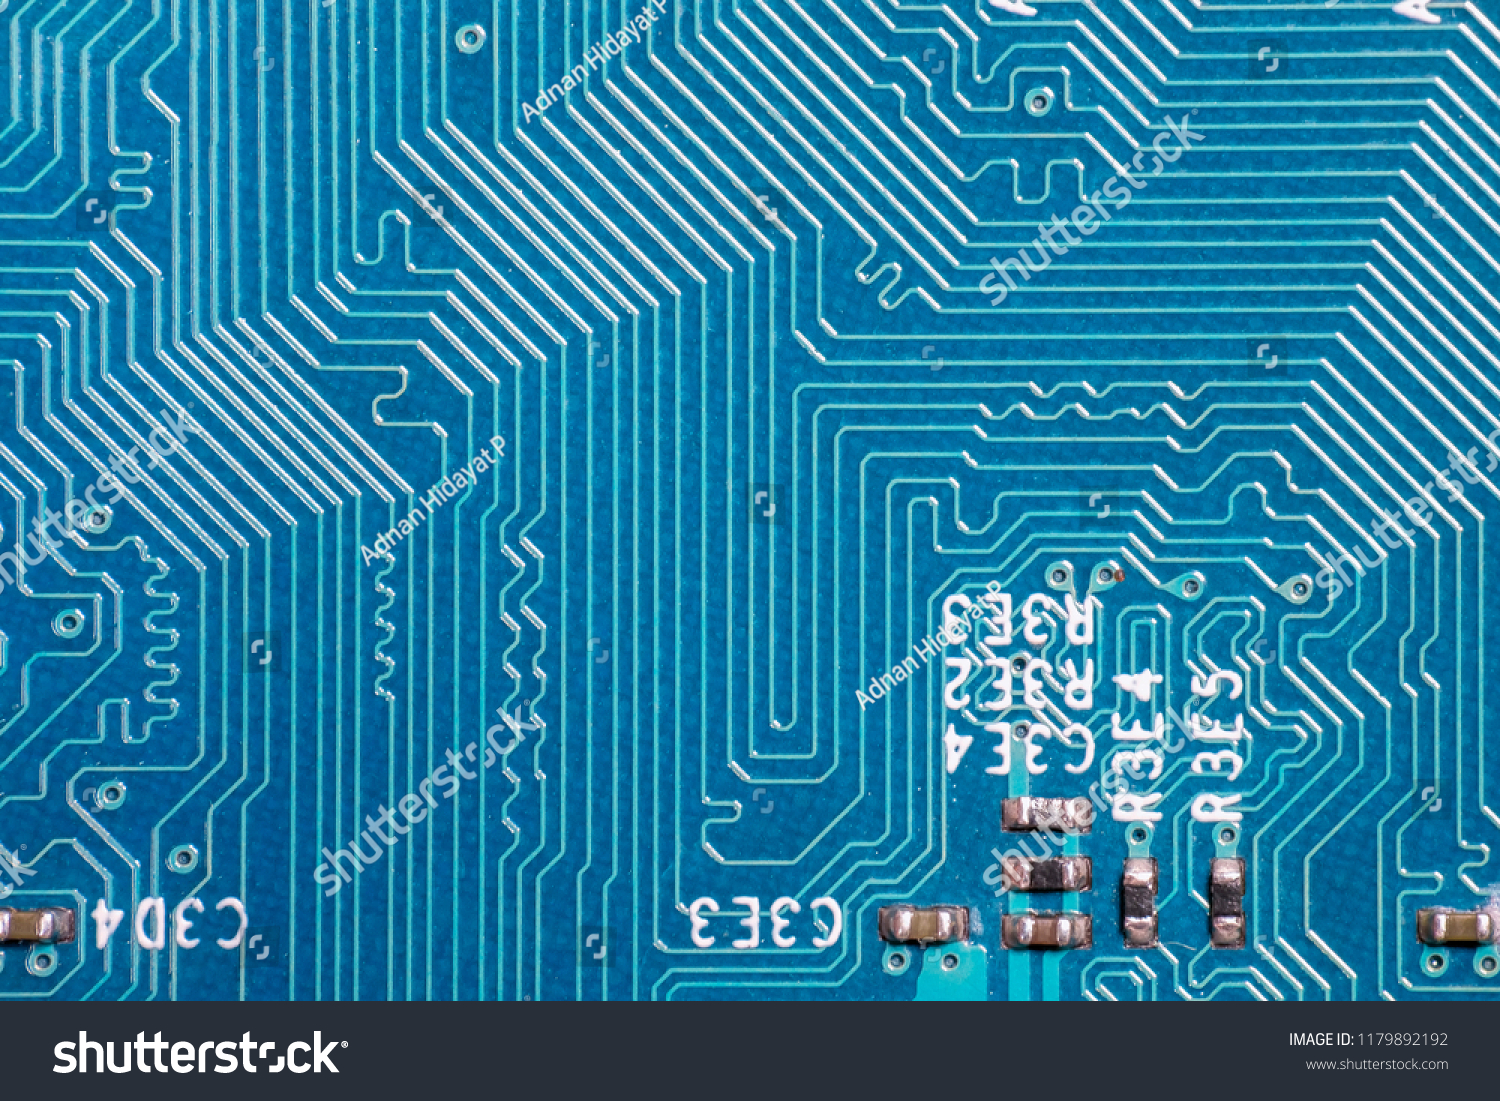 Photo Printed Circuit Board Pcb Stock Edit Now How To Make Electronic Boards Of Path Pattern On Device The